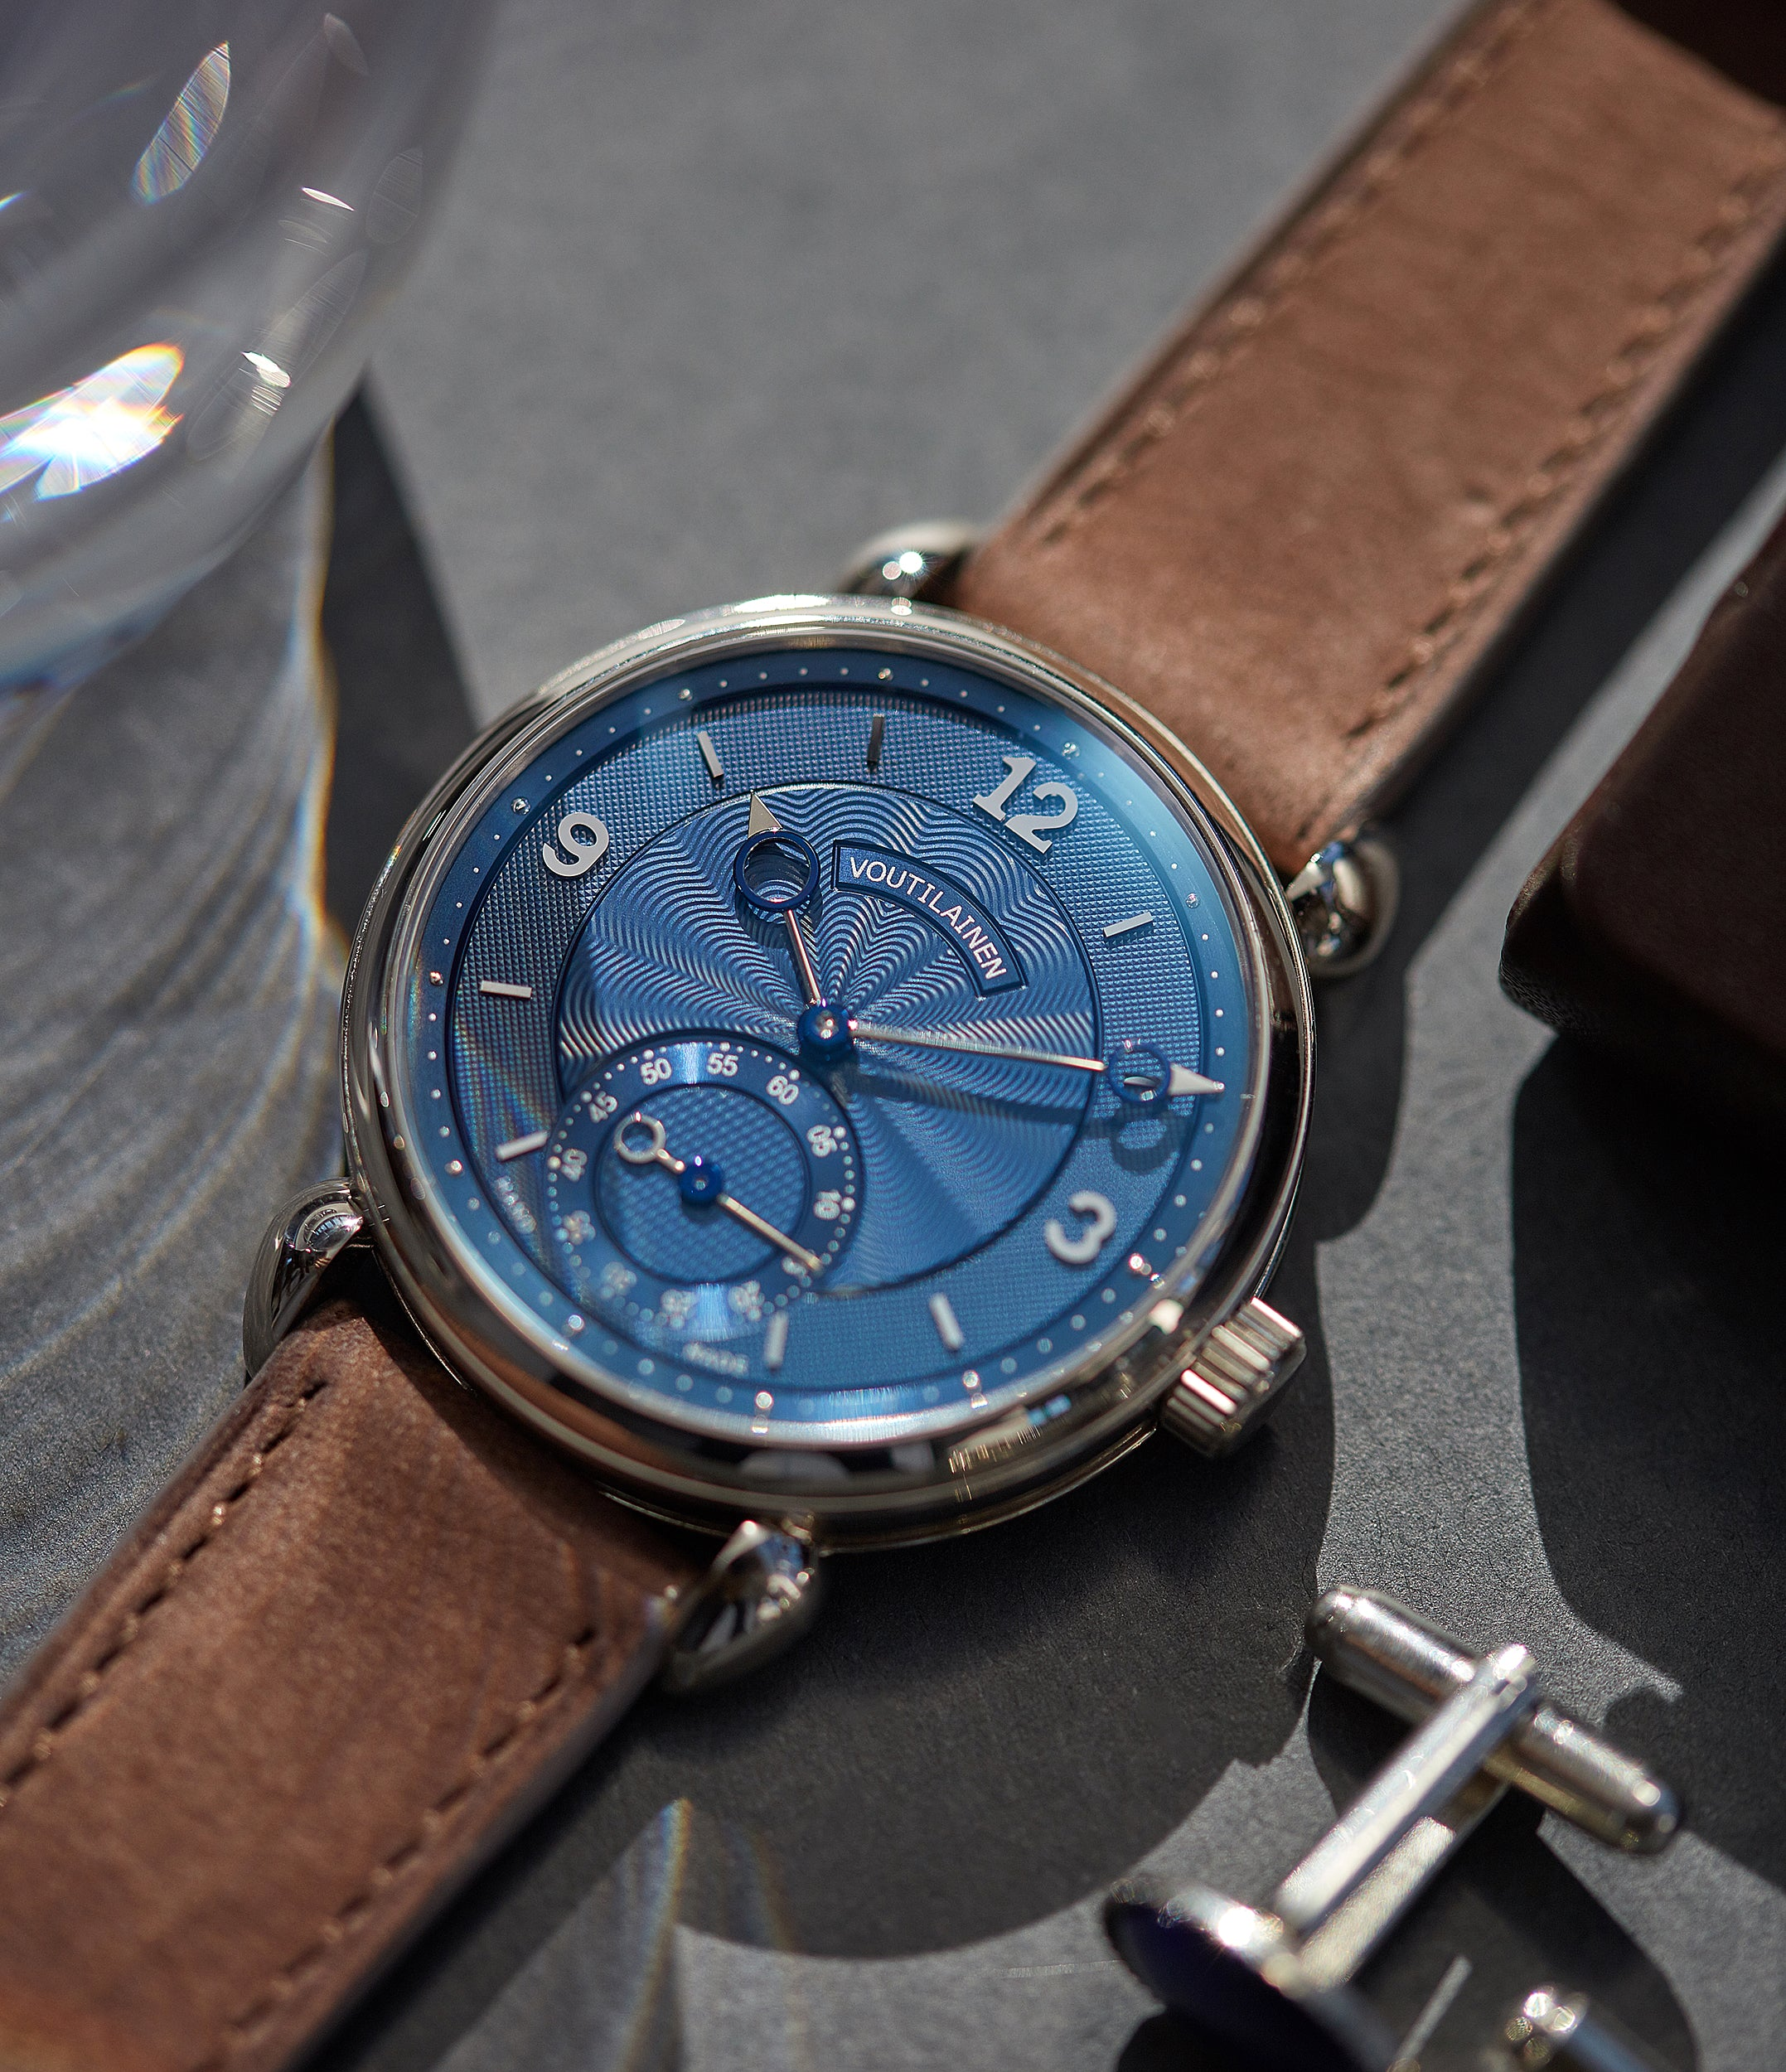 Kari Voutilainen blue dial Vingt-8 Cal. 28 pre-owned dress watch for sale online at A Collected Man London approved re-seller of independent watchmakers